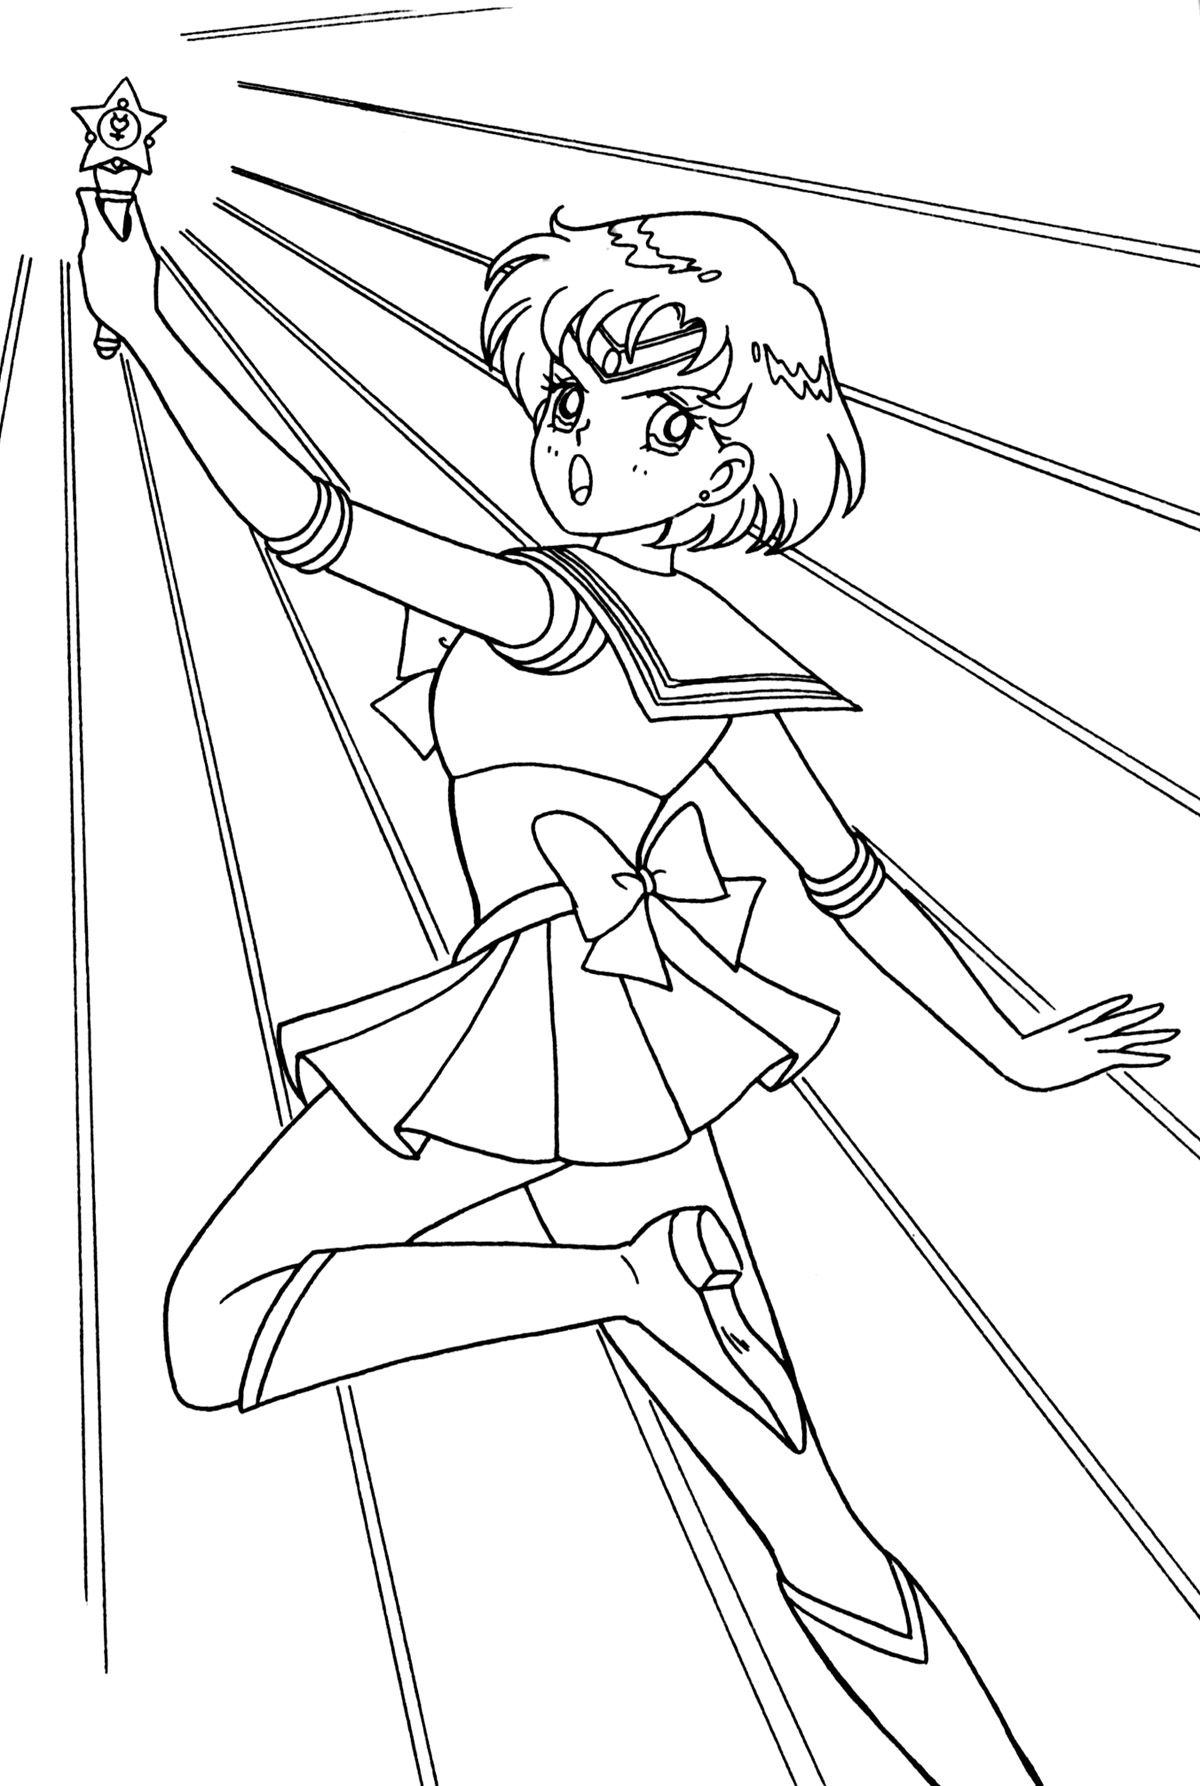 Pin By Ewelkacien On Kolorowanki In 2020 Sailor Moon Coloring Pages Pattern Drawing Coloring Books